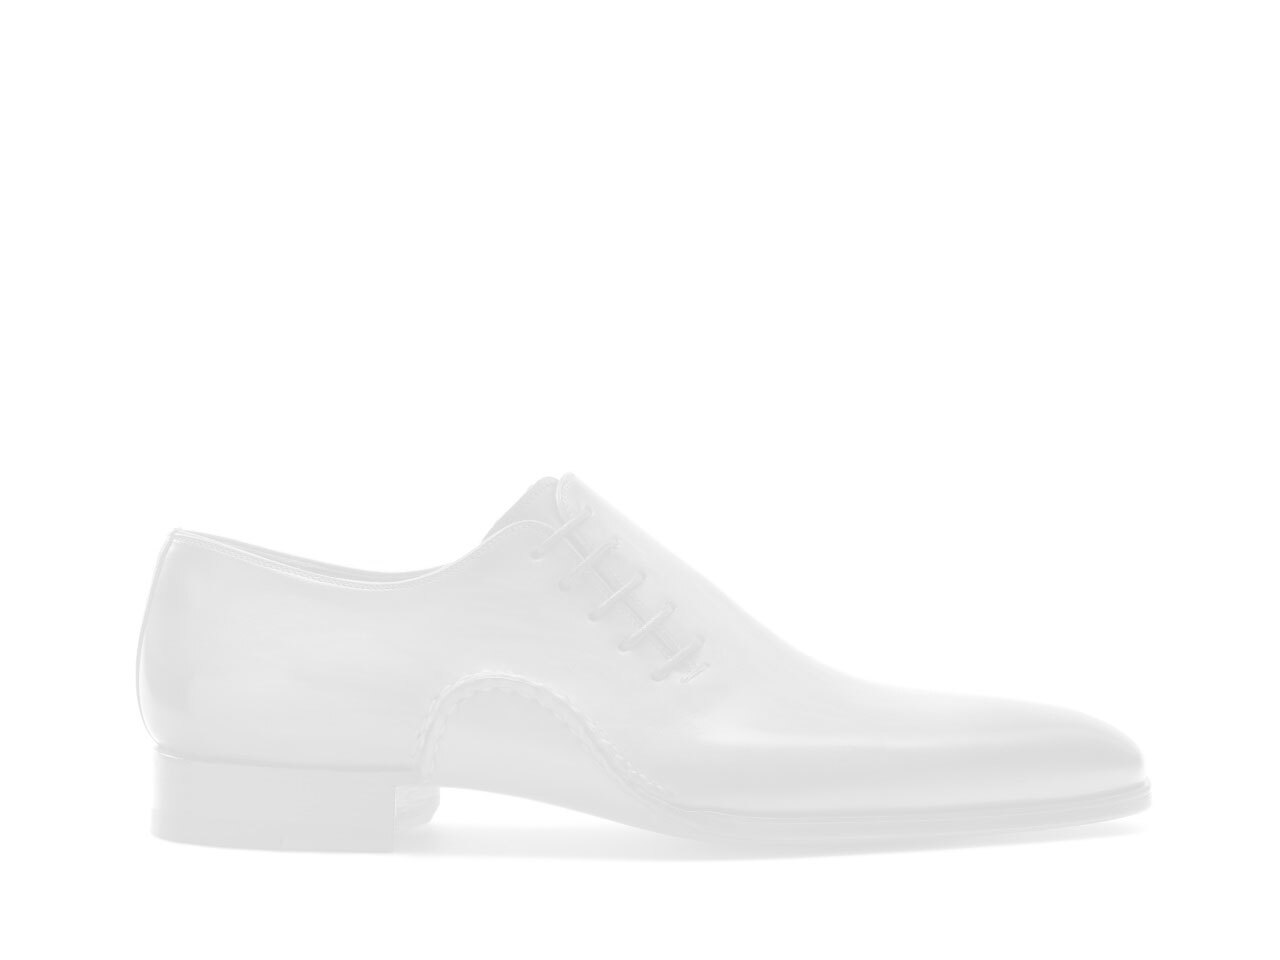 Sole of the Magnanni Capela White Men's Sneakers